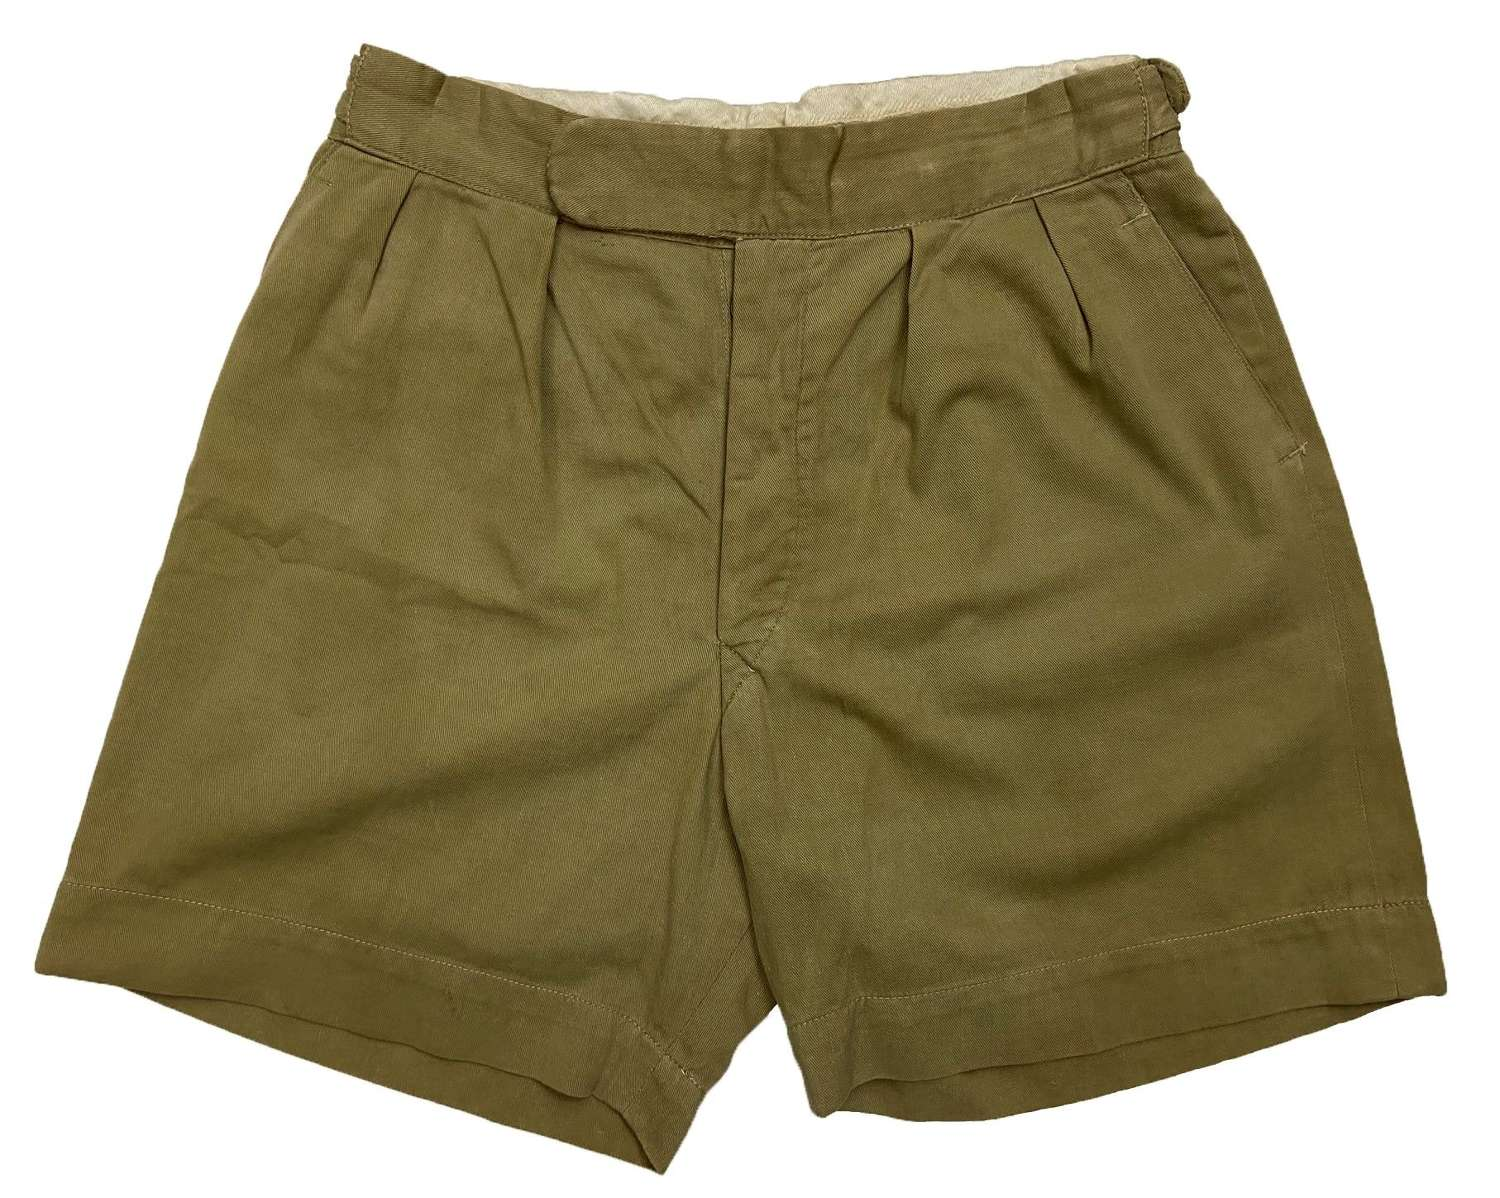 Original 1950s Men's Khaki Drill Shorts by 'Bukta'